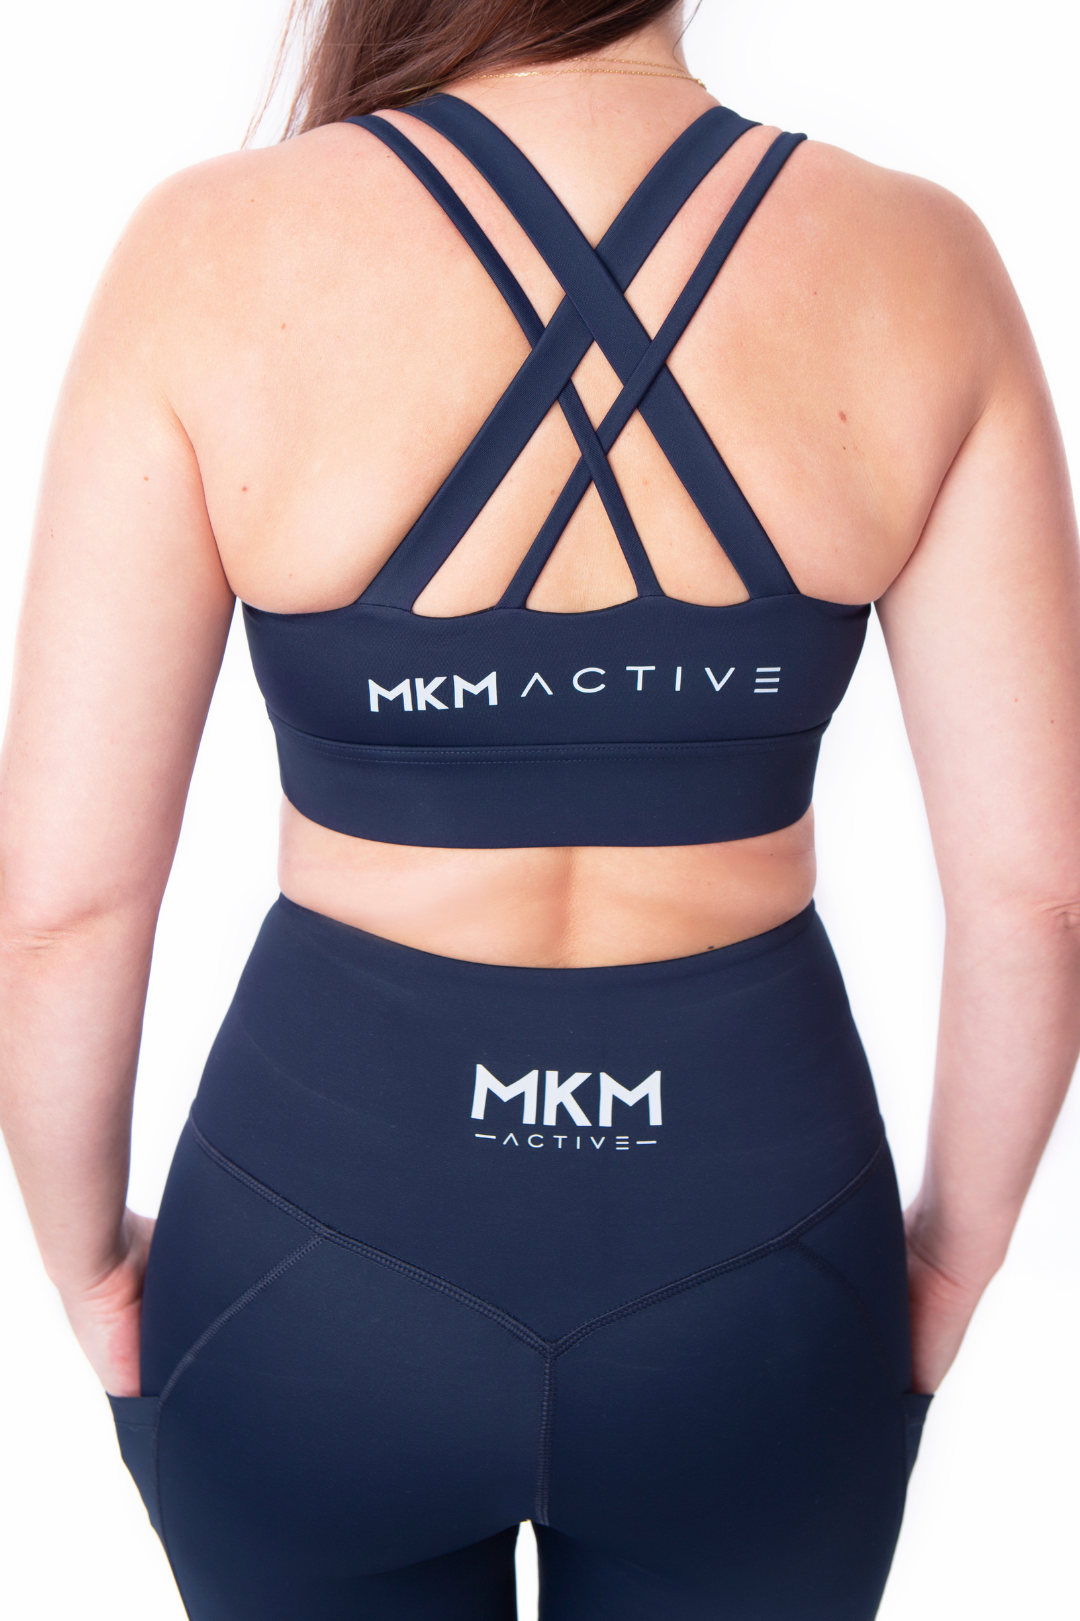 MKM ACTIVE HIGH SUPPORT CROP DEEP NAVY